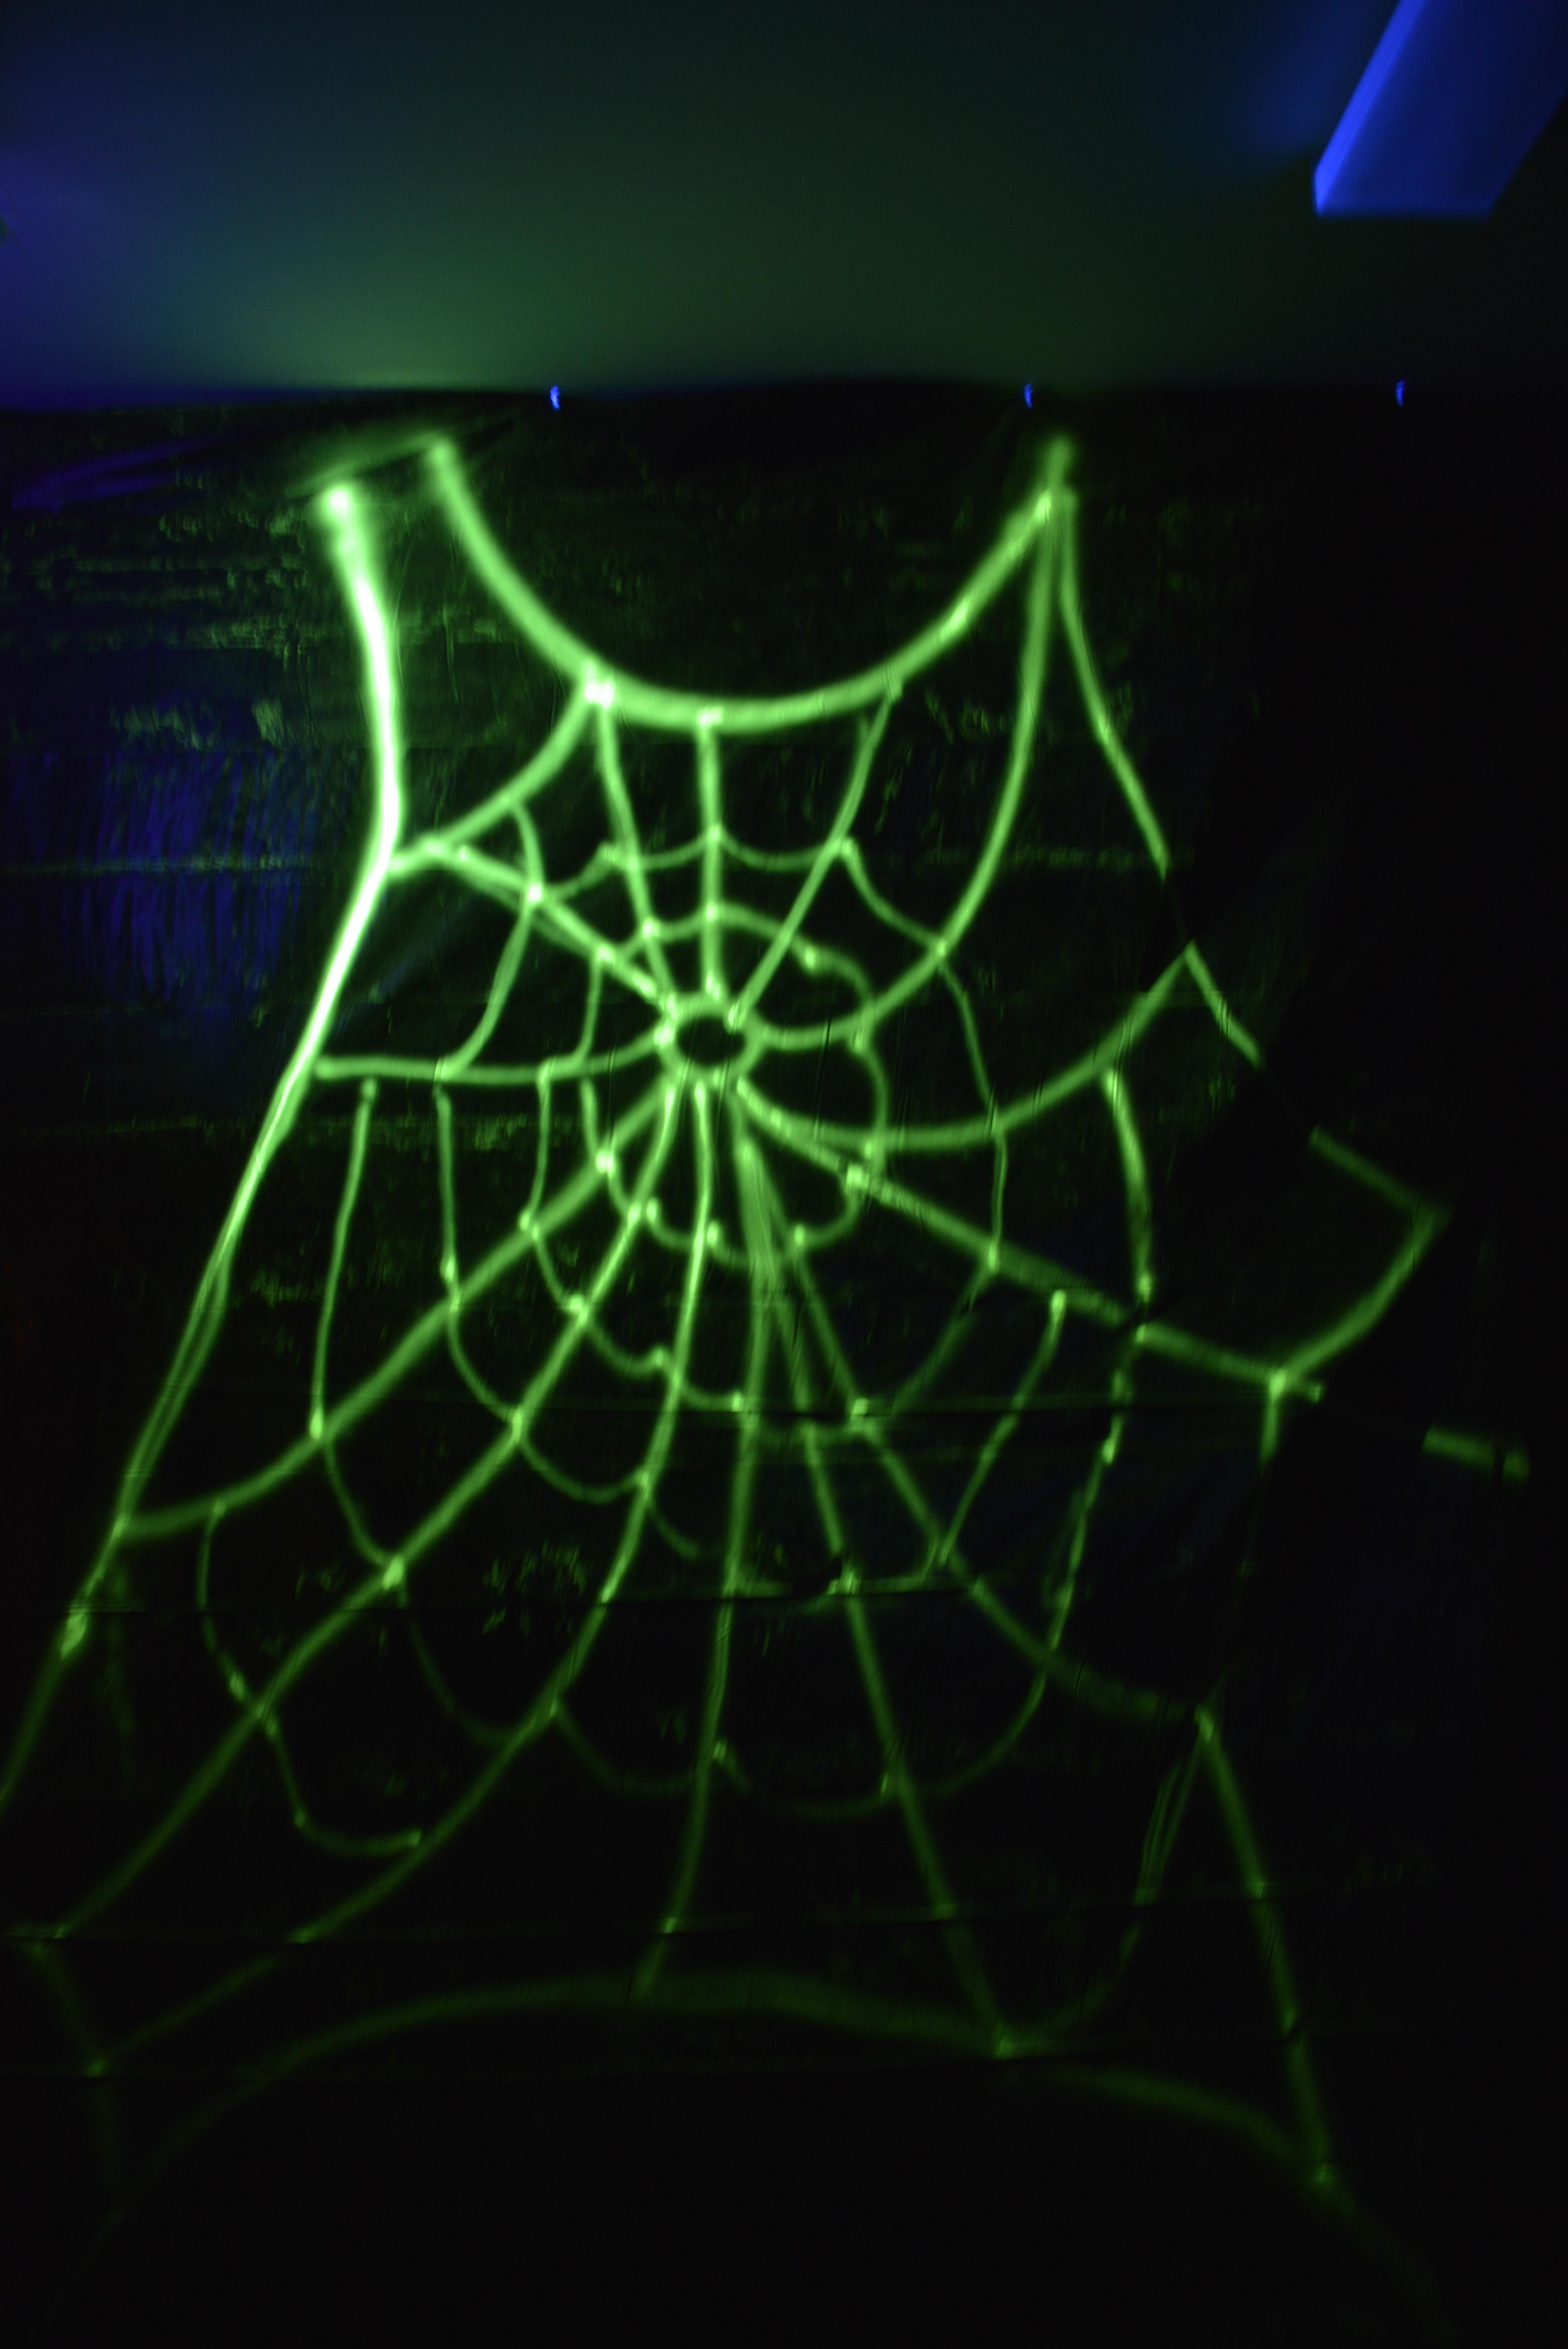 used walmart glow in the dark spray paint to make a giant spiderweb on black tarp and then lit by a black light a spooky entrance to any party or trick